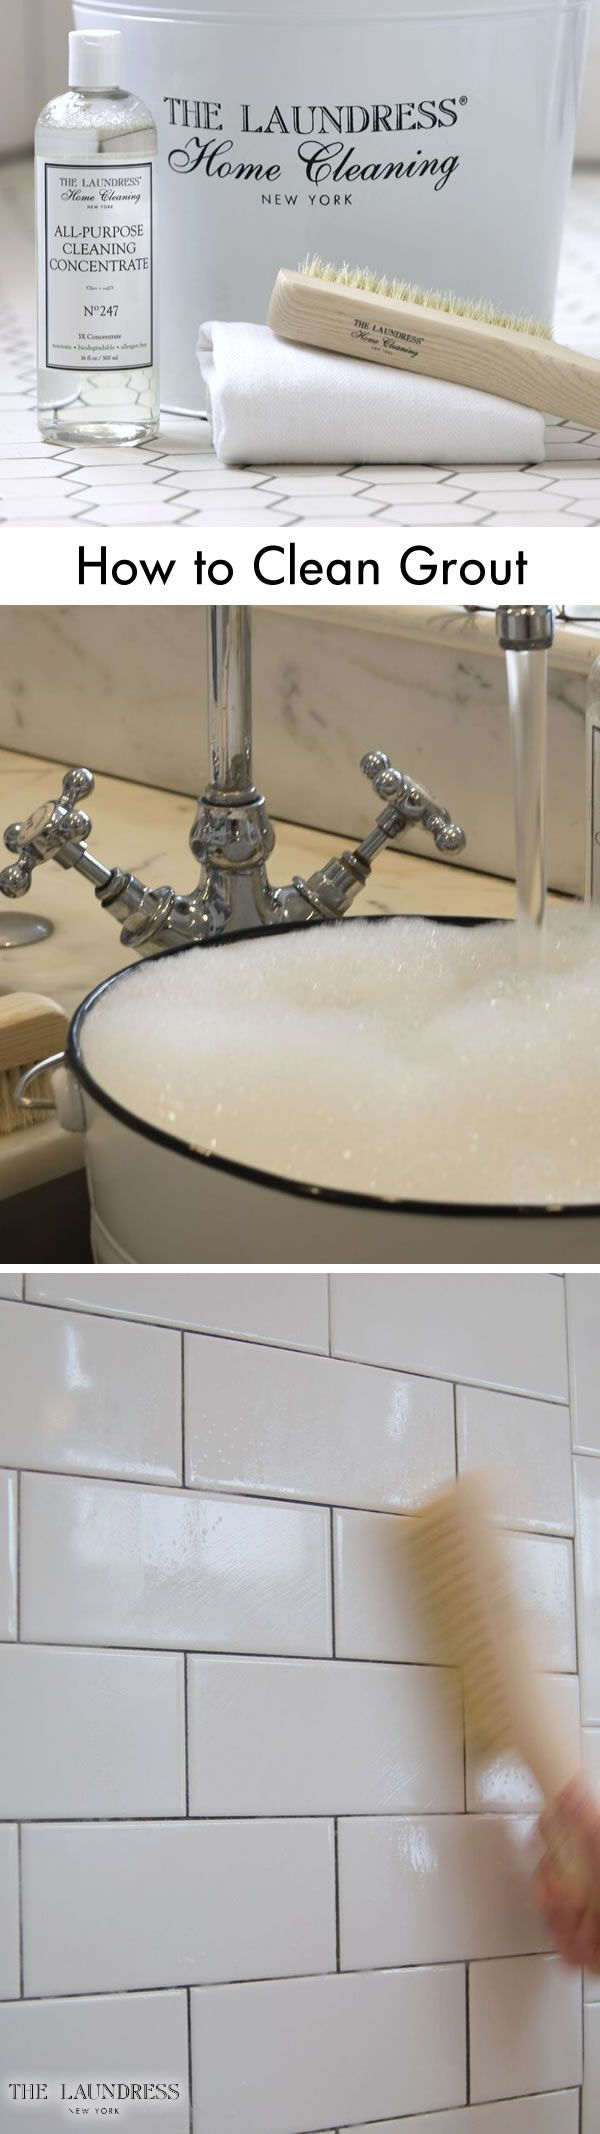 Best Home Cleaning How Tos Images On Pinterest - Remove stains from bathroom sink